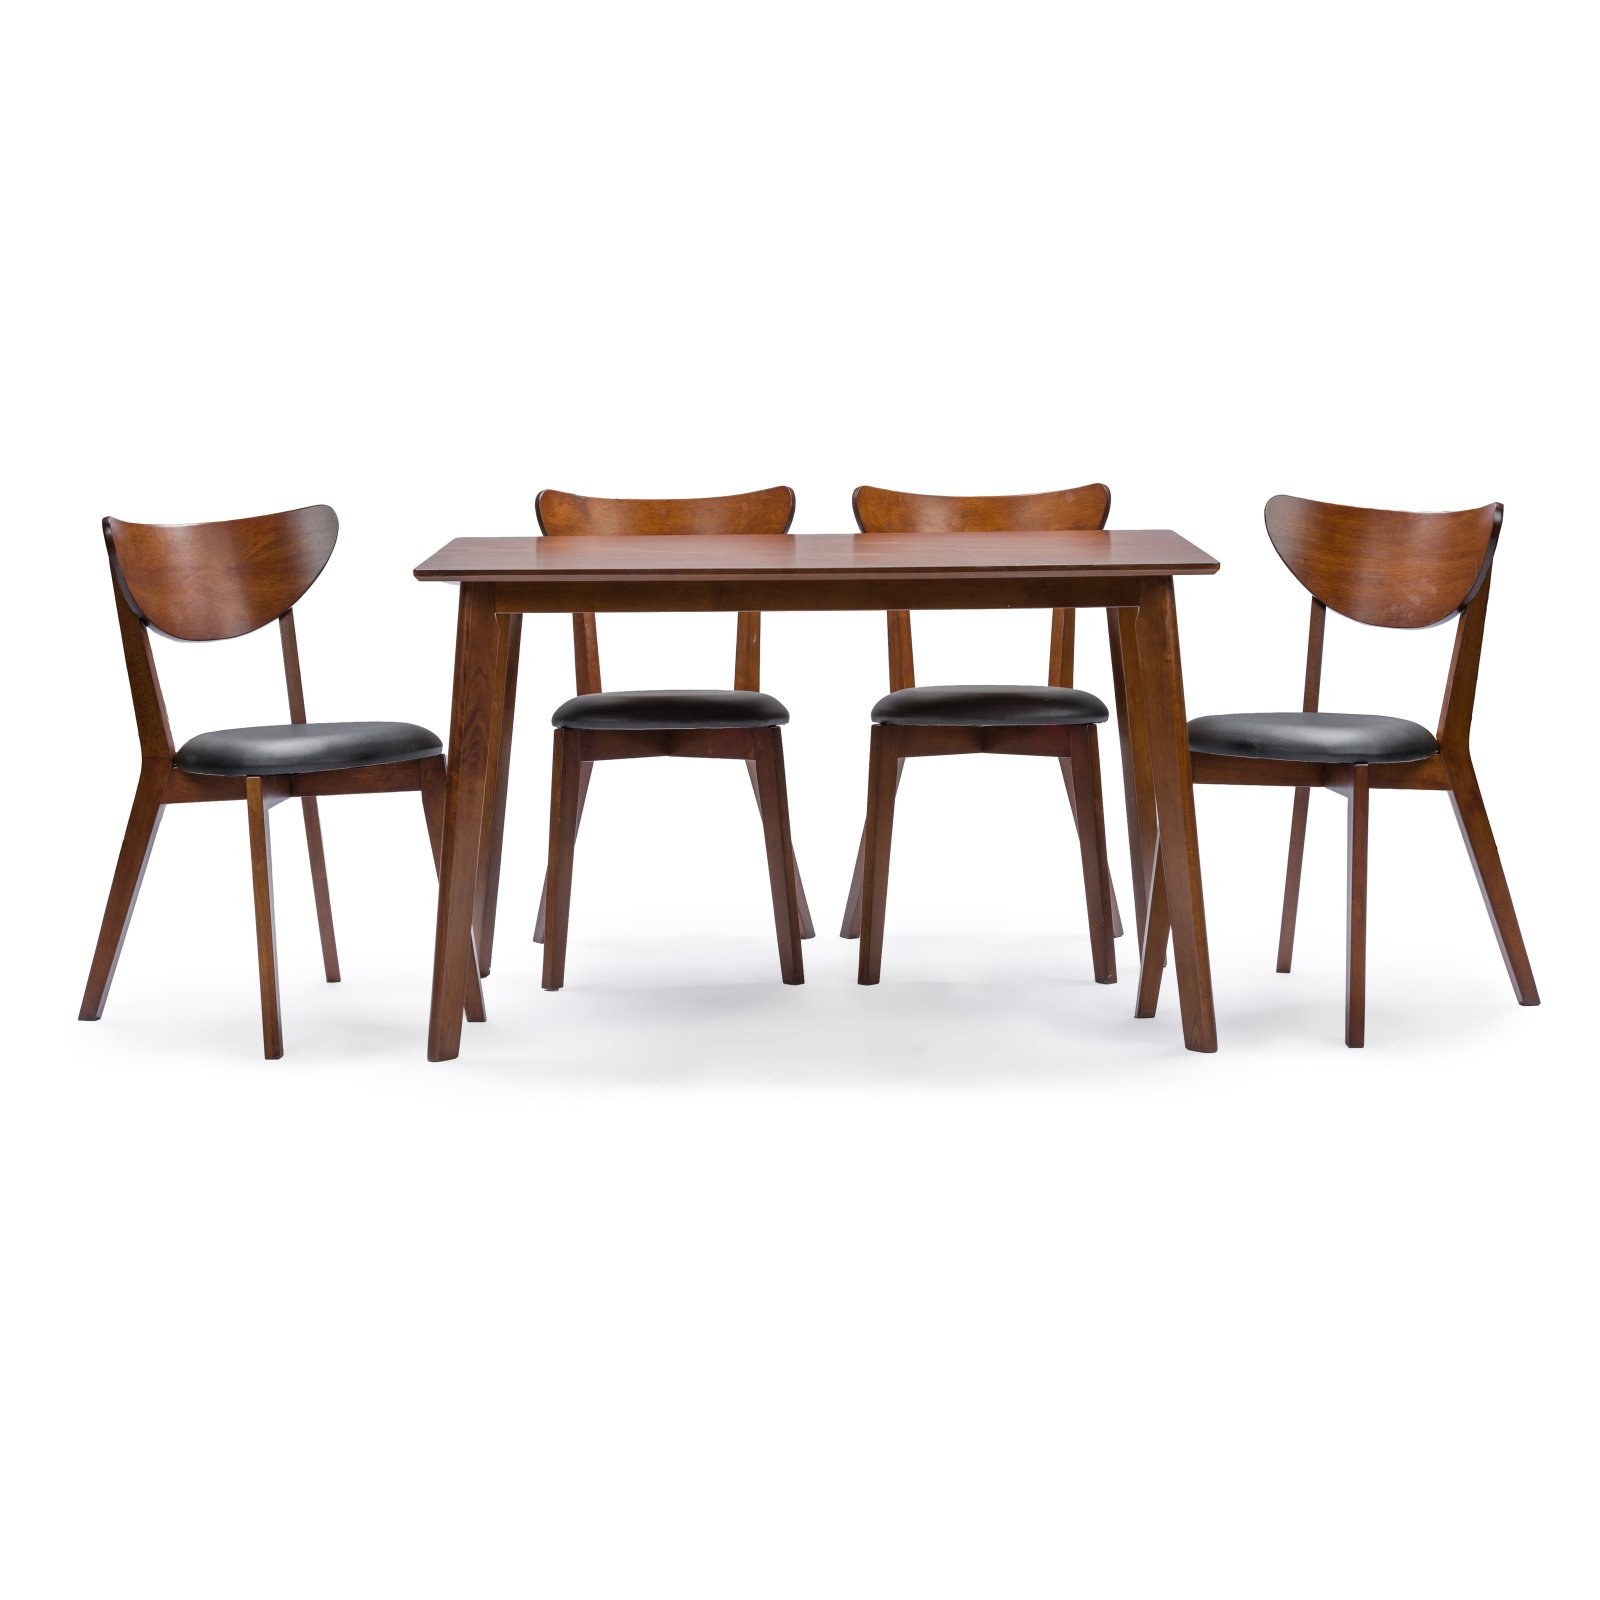 Baxton Studio Sumner Mid-Century-Style Walnut Brown 5-Piece Dining Room Set by Baxton Studio